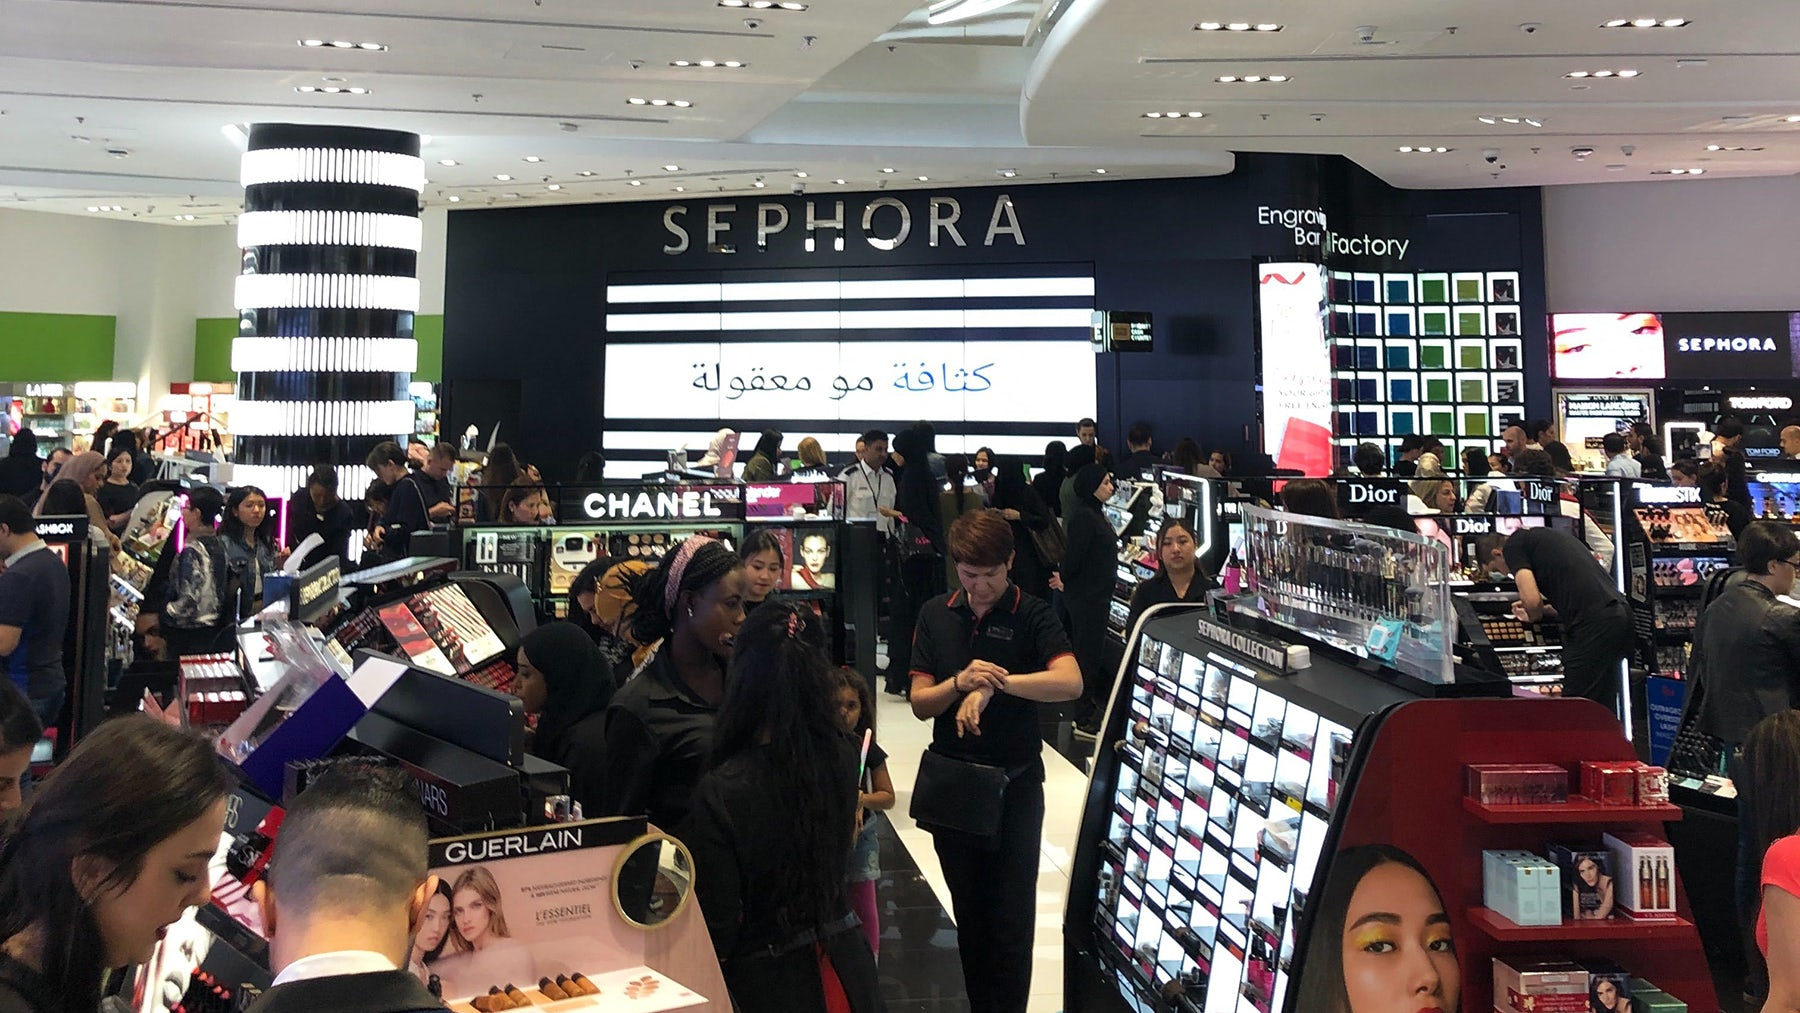 Sephora at the Dubai Mall | Photo by Rachel Strugatz